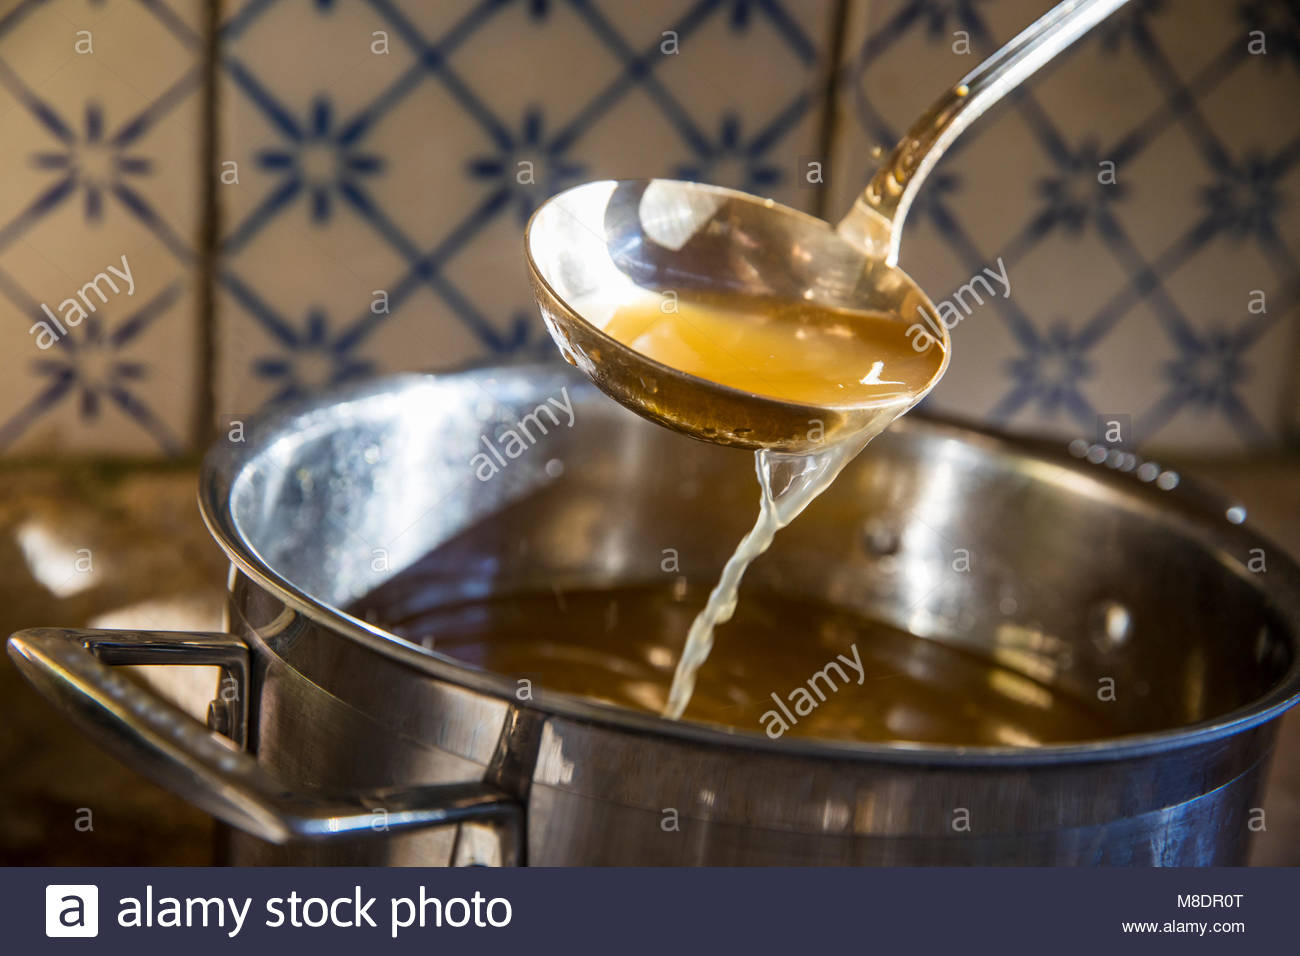 Broth being ladled from saucepan - Stock Image